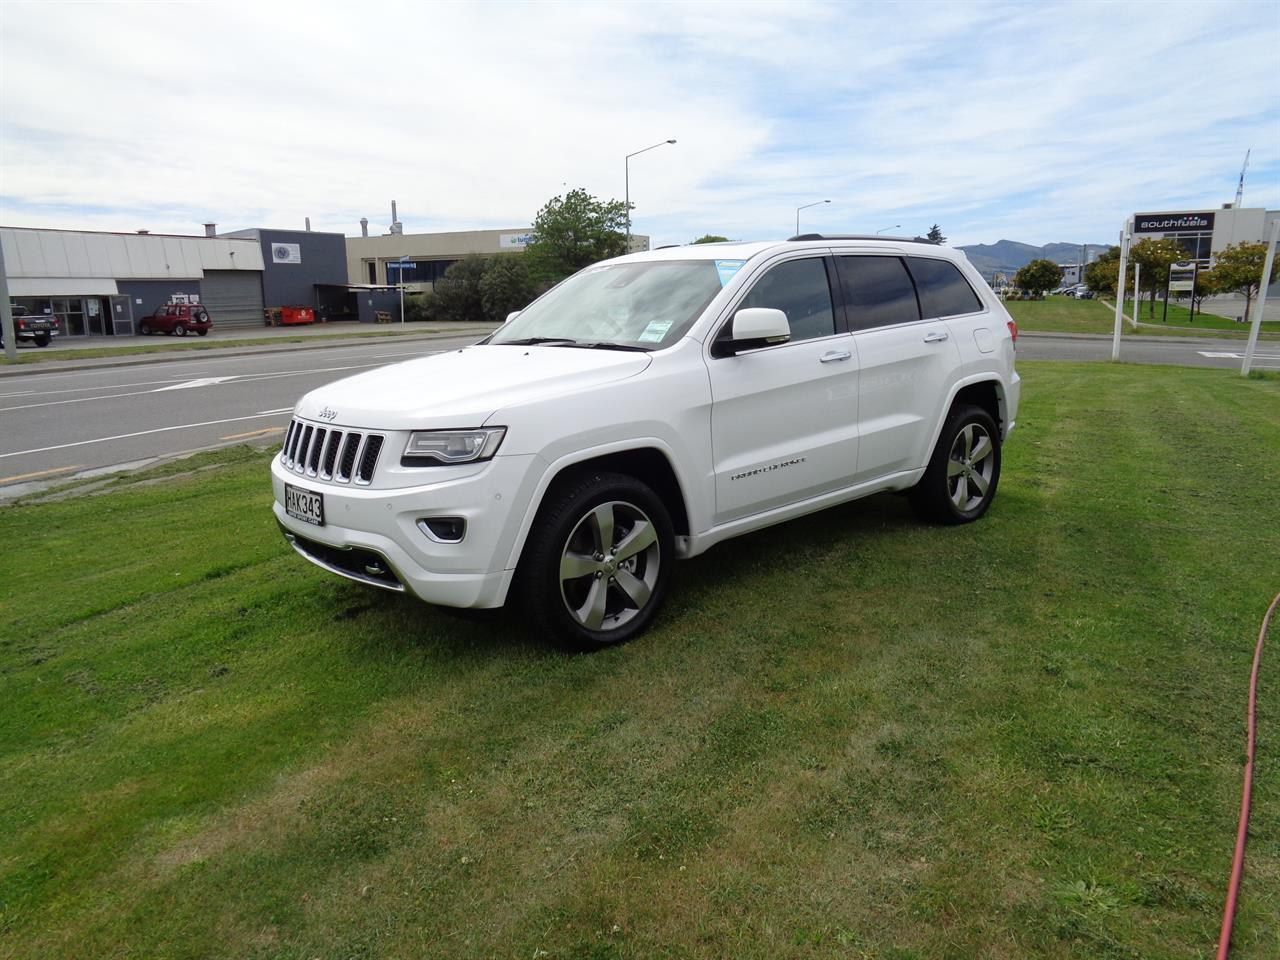 image-2, 2013 Jeep Grand Cherokee 3.0L V6 CRD OVERLAND at Christchurch